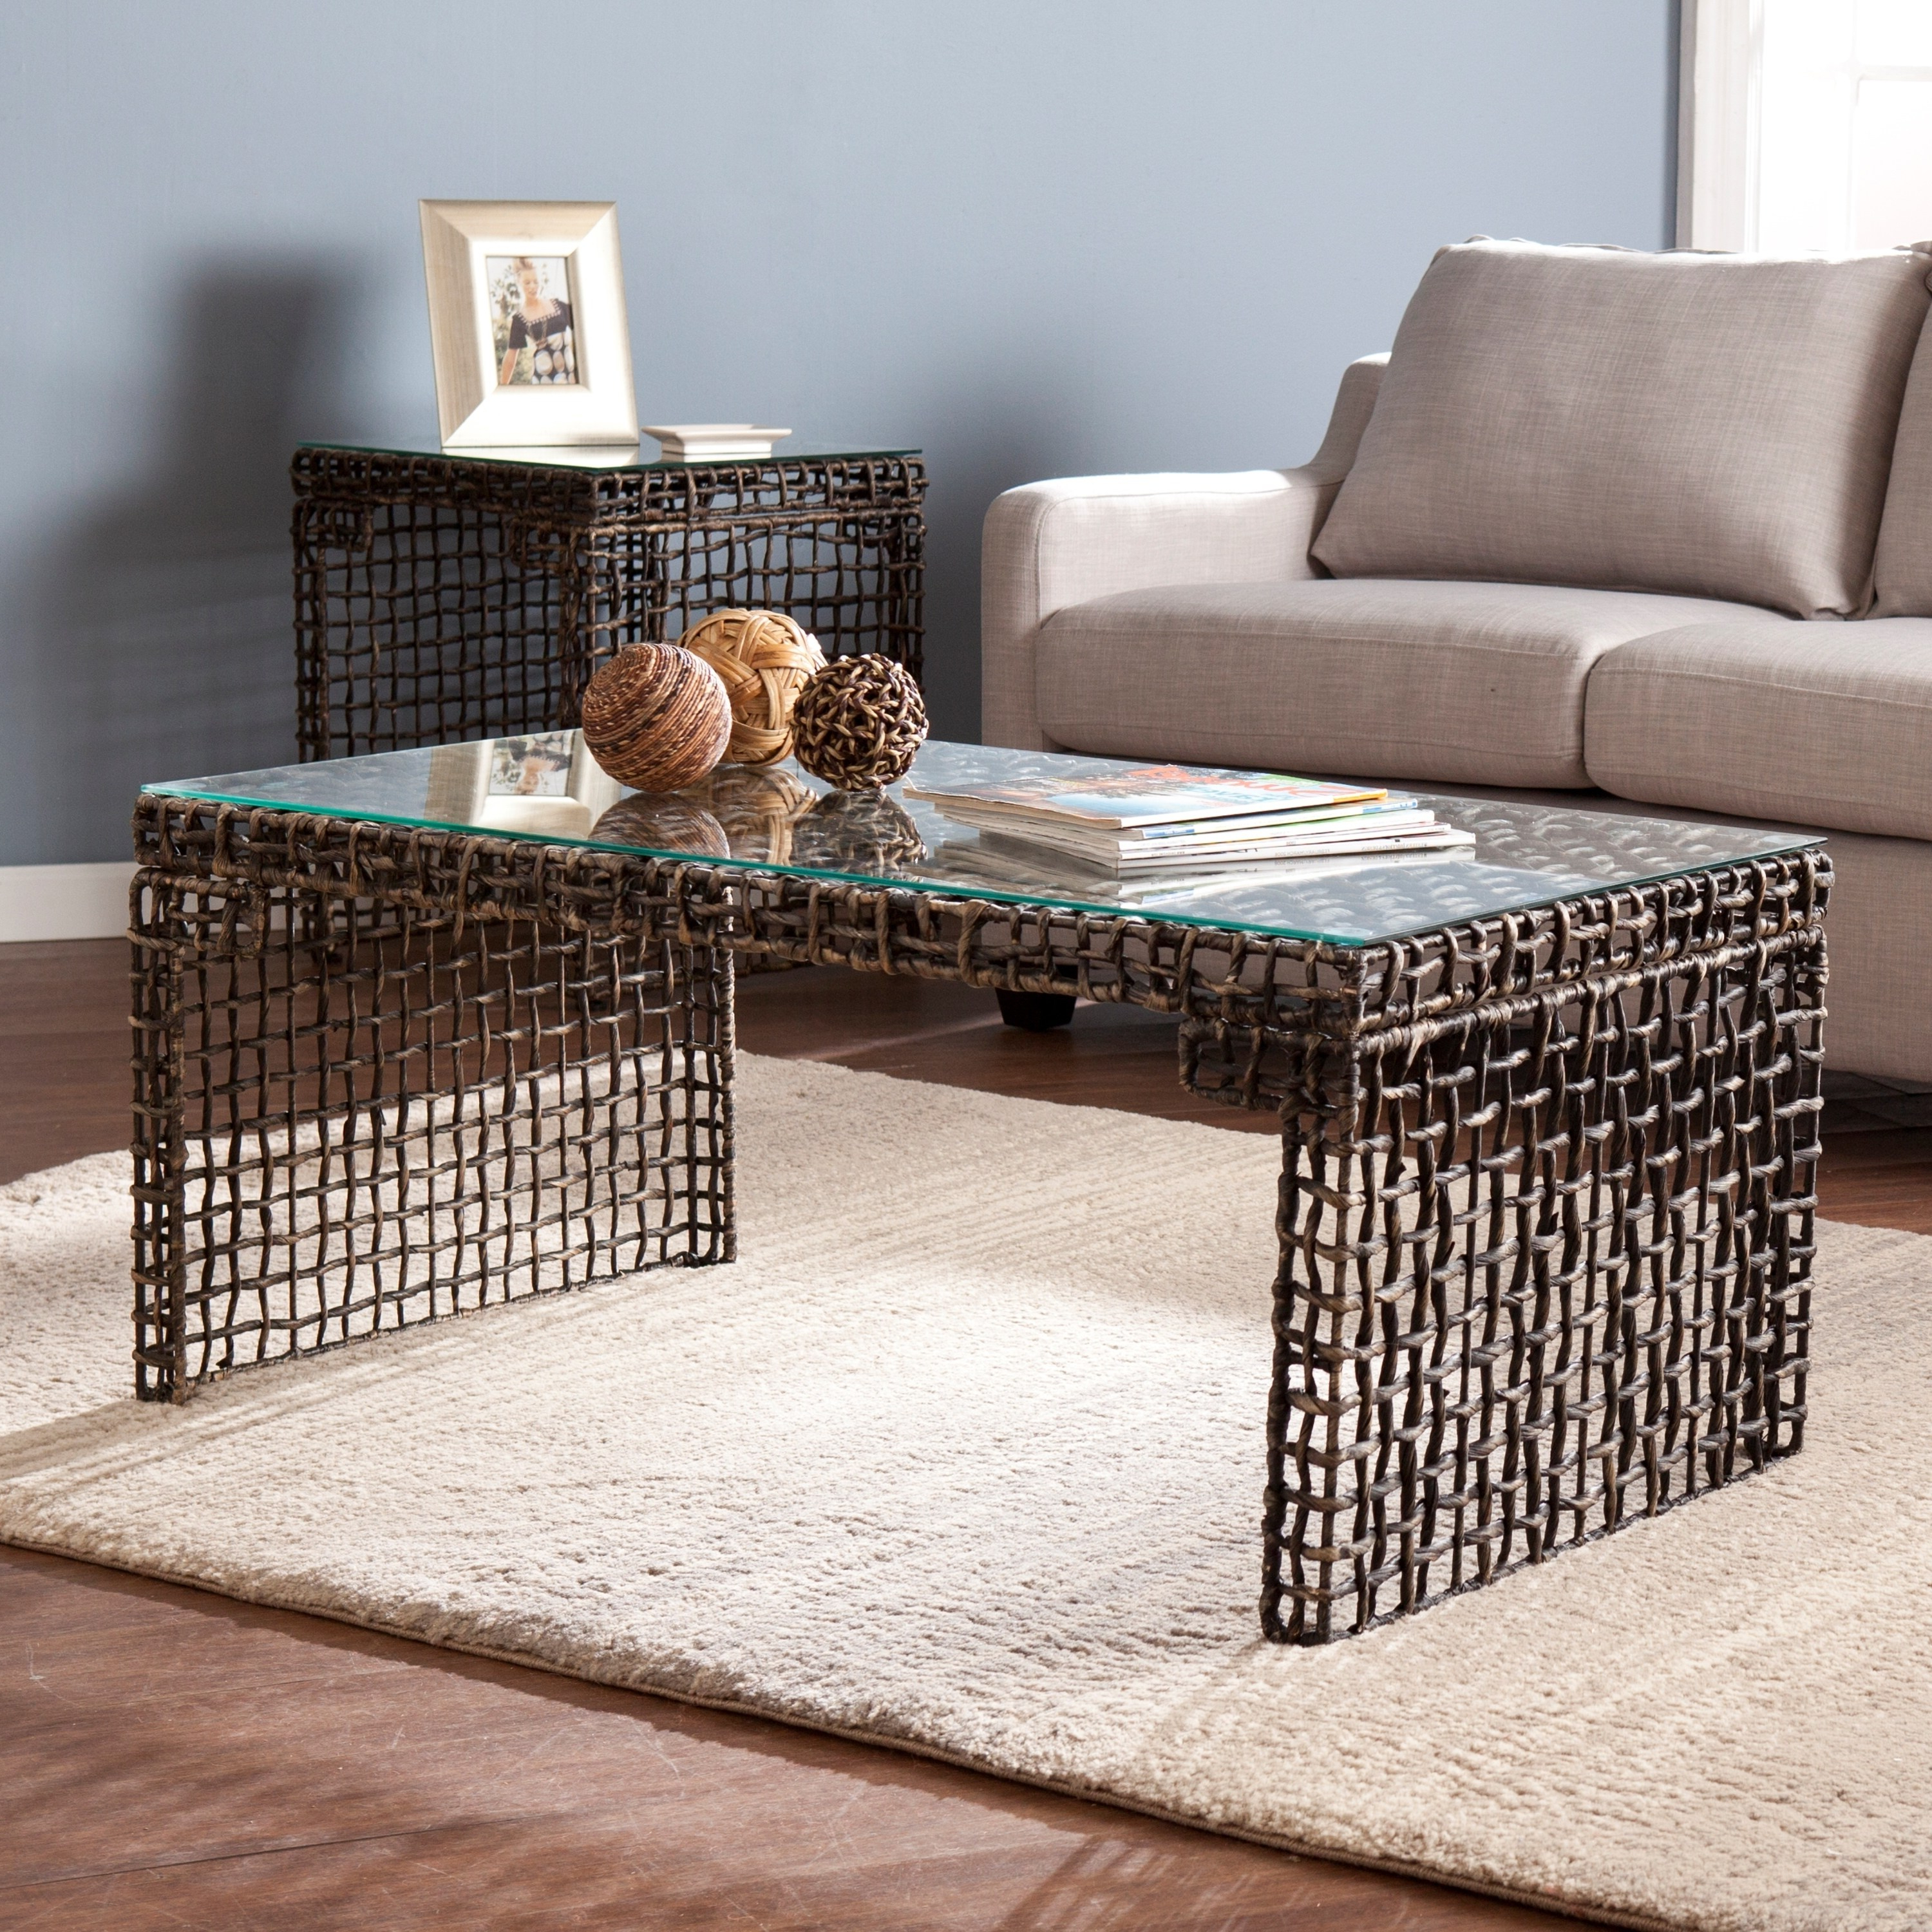 The Curated Nomad Belize Woven Cocktail Table – Walmart Regarding Well Known The Curated Nomad Belize Woven Cocktail Tables (View 14 of 20)